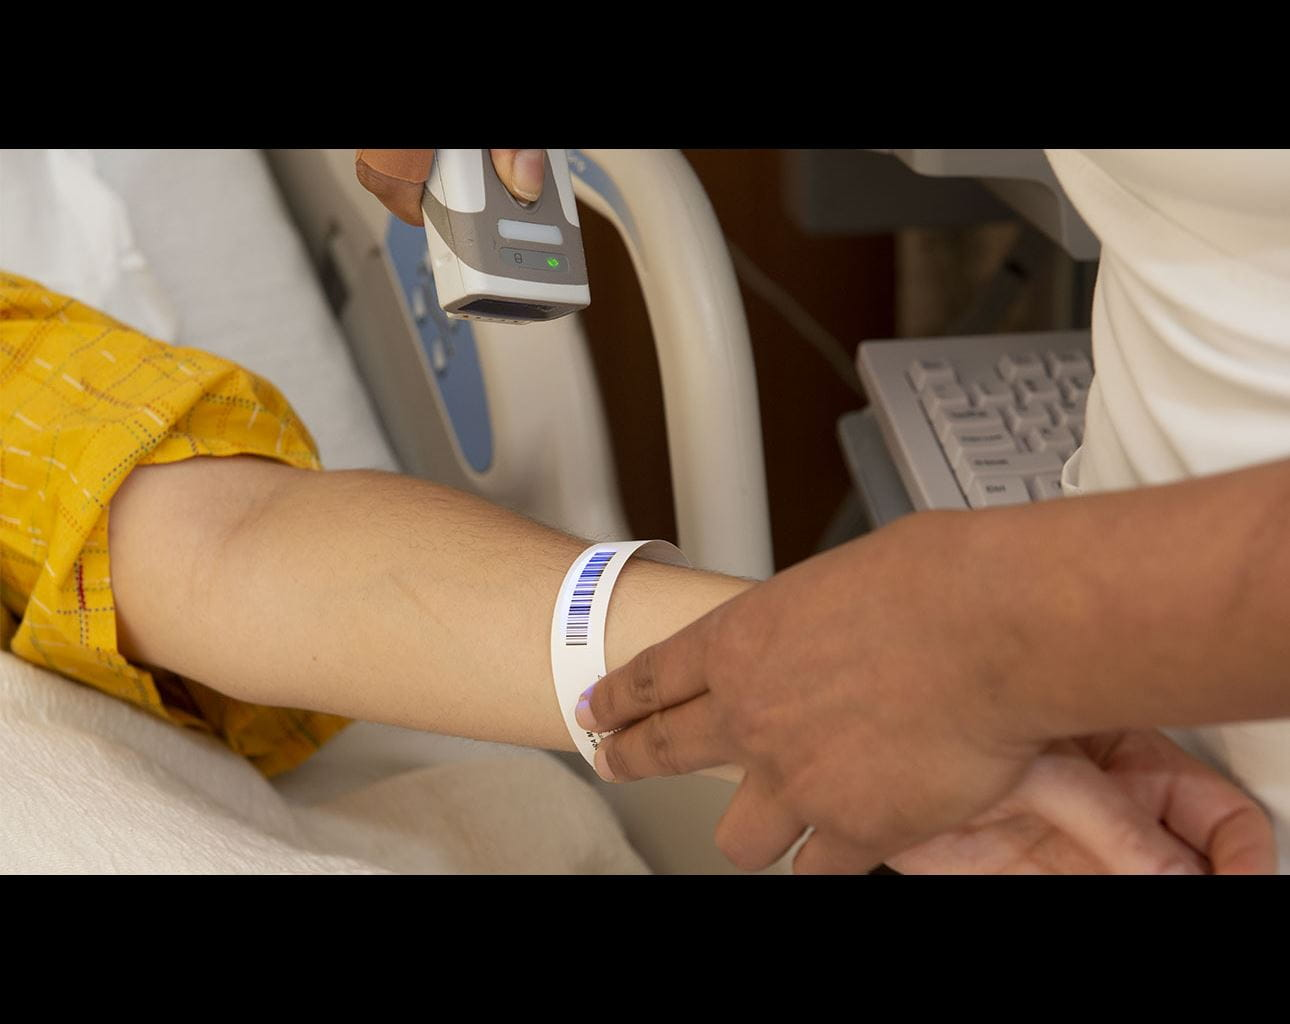 patient wrist band being scanned